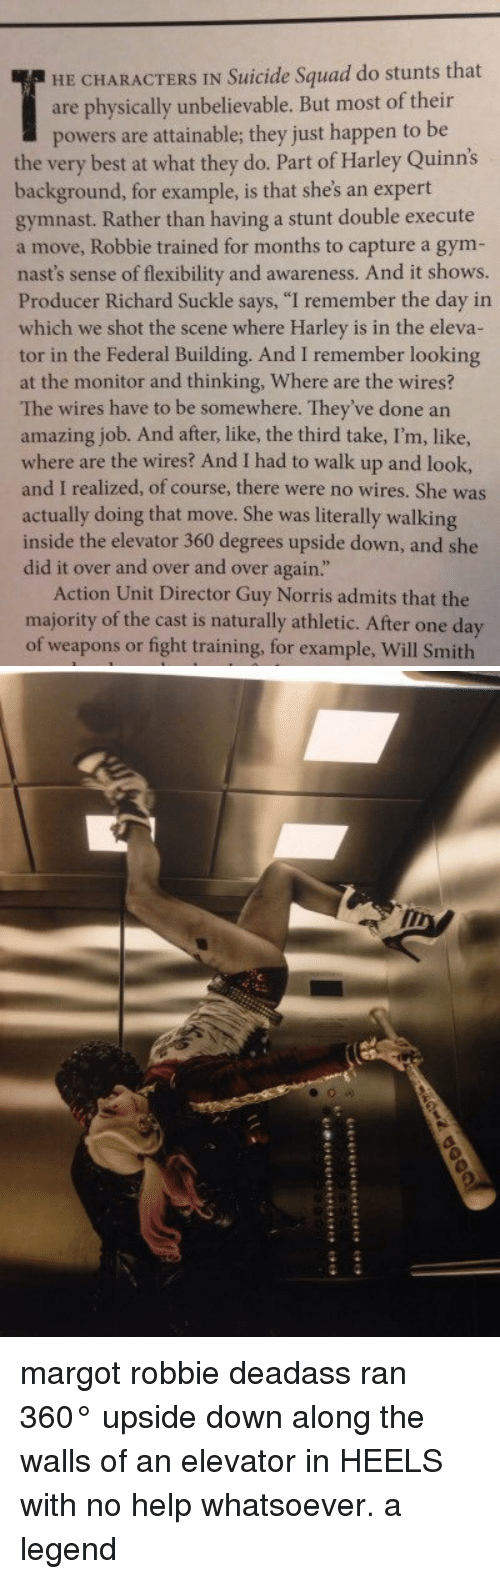 """Overation: HE CHARACTERS IN Suicide Squad do stunts that  are physically unbelievable. But most of their  powers are attainable; they just happen to be  the very best at what they do. Part of Harley Quinn's  background, for example, is that she's an expert  gymnast. Rather than having a stunt double execute  a move, Robbie trained for months to capture a gym-  nast's sense of flexibility and awareness. And it shows.  Producer Richard Suckle says, """"I remember the day in  which we shot the scene where Harley is in the eleva-  tor in the Federal Building. And I remember looking  at the monitor and thinking, Where are the wires?  The wires have to be somewhere. They've done an  amazing job. And after, third take, I'm, like,  where are the wires? And I had to walk up and look,  and I realized, of course, there were no wires. She was  actually doing that move. She was literally walking  inside the elevator 360 degrees upside down, and she  did it over and over and over again.""""  Action Unit Director Guy Norris admits that the  majority of the cast is naturally athletic. After one day  of weapons or fight training, for example, Will Smith margot robbie deadass ran 360° upside down along the walls of an elevator in HEELS with no help whatsoever. a legend"""